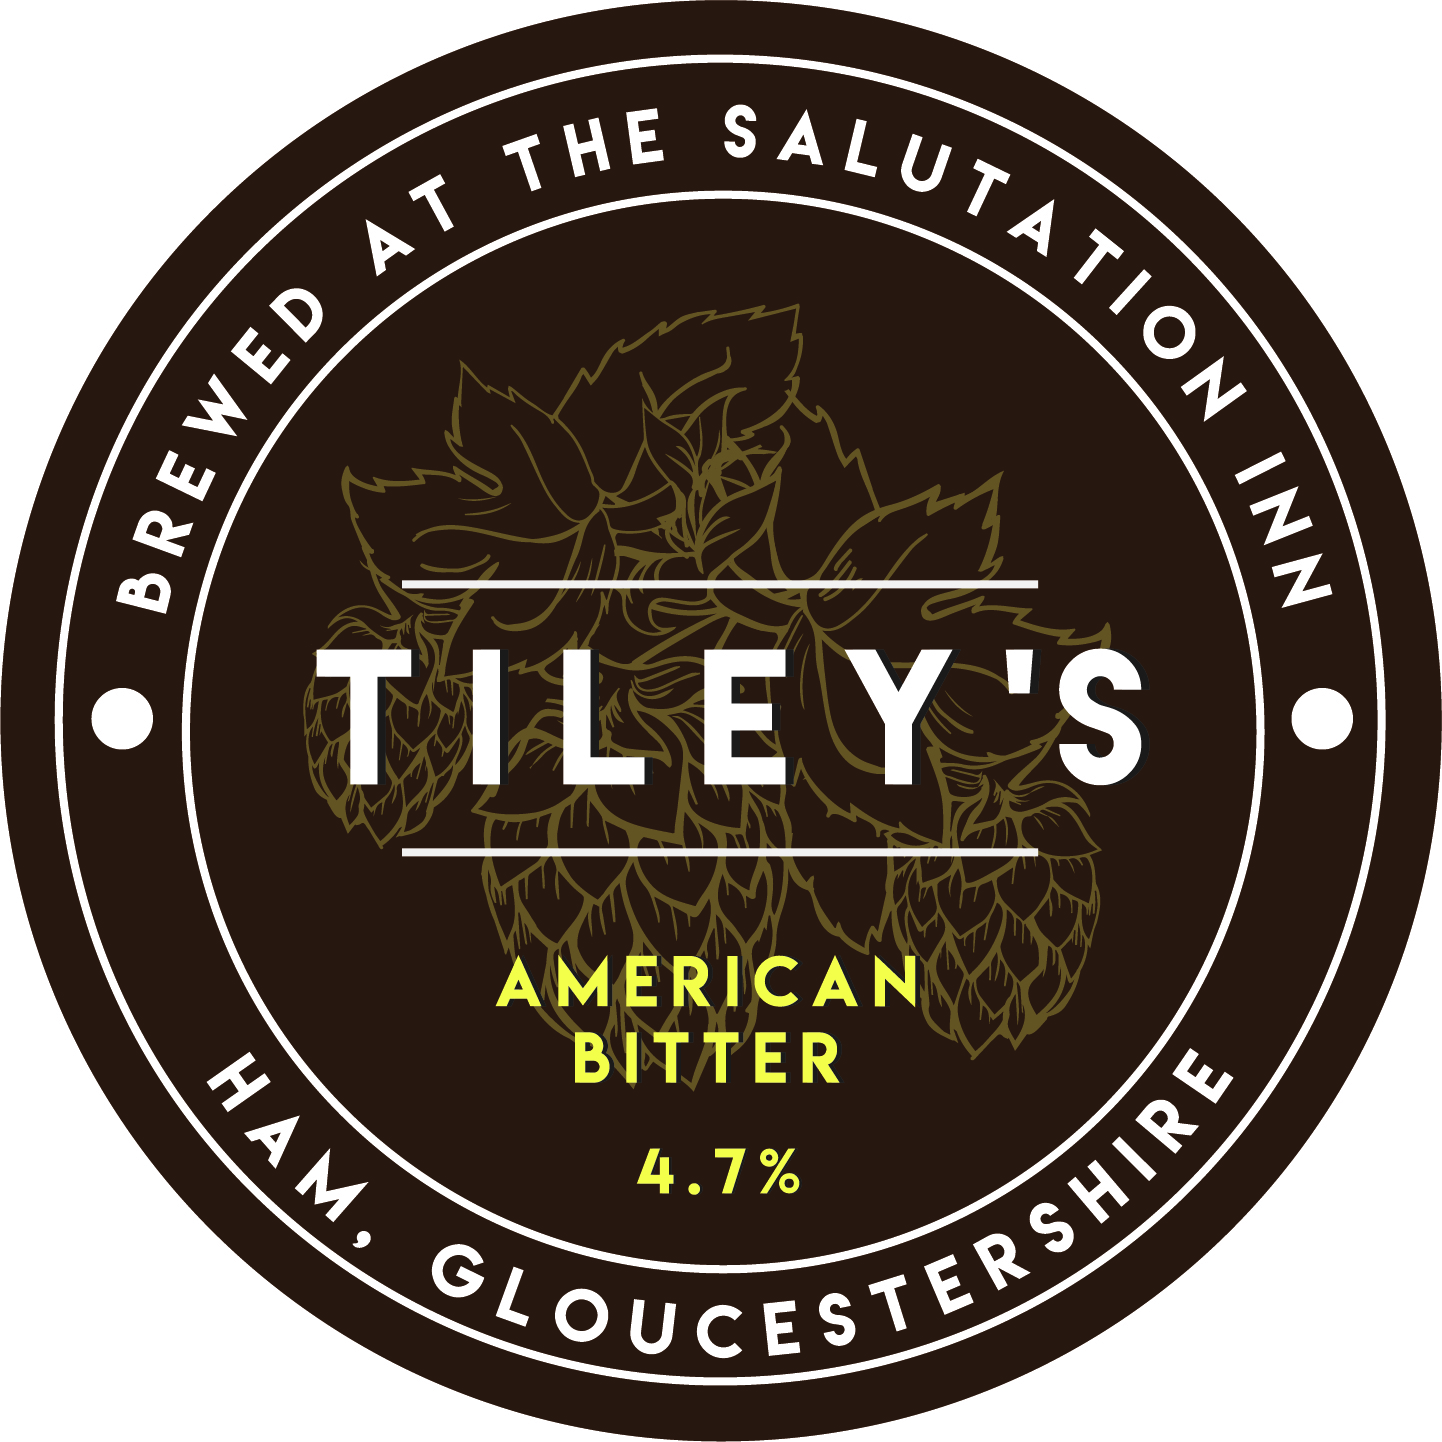 Tiley's Brewery American Bitter 4.7% Bag-in-Box